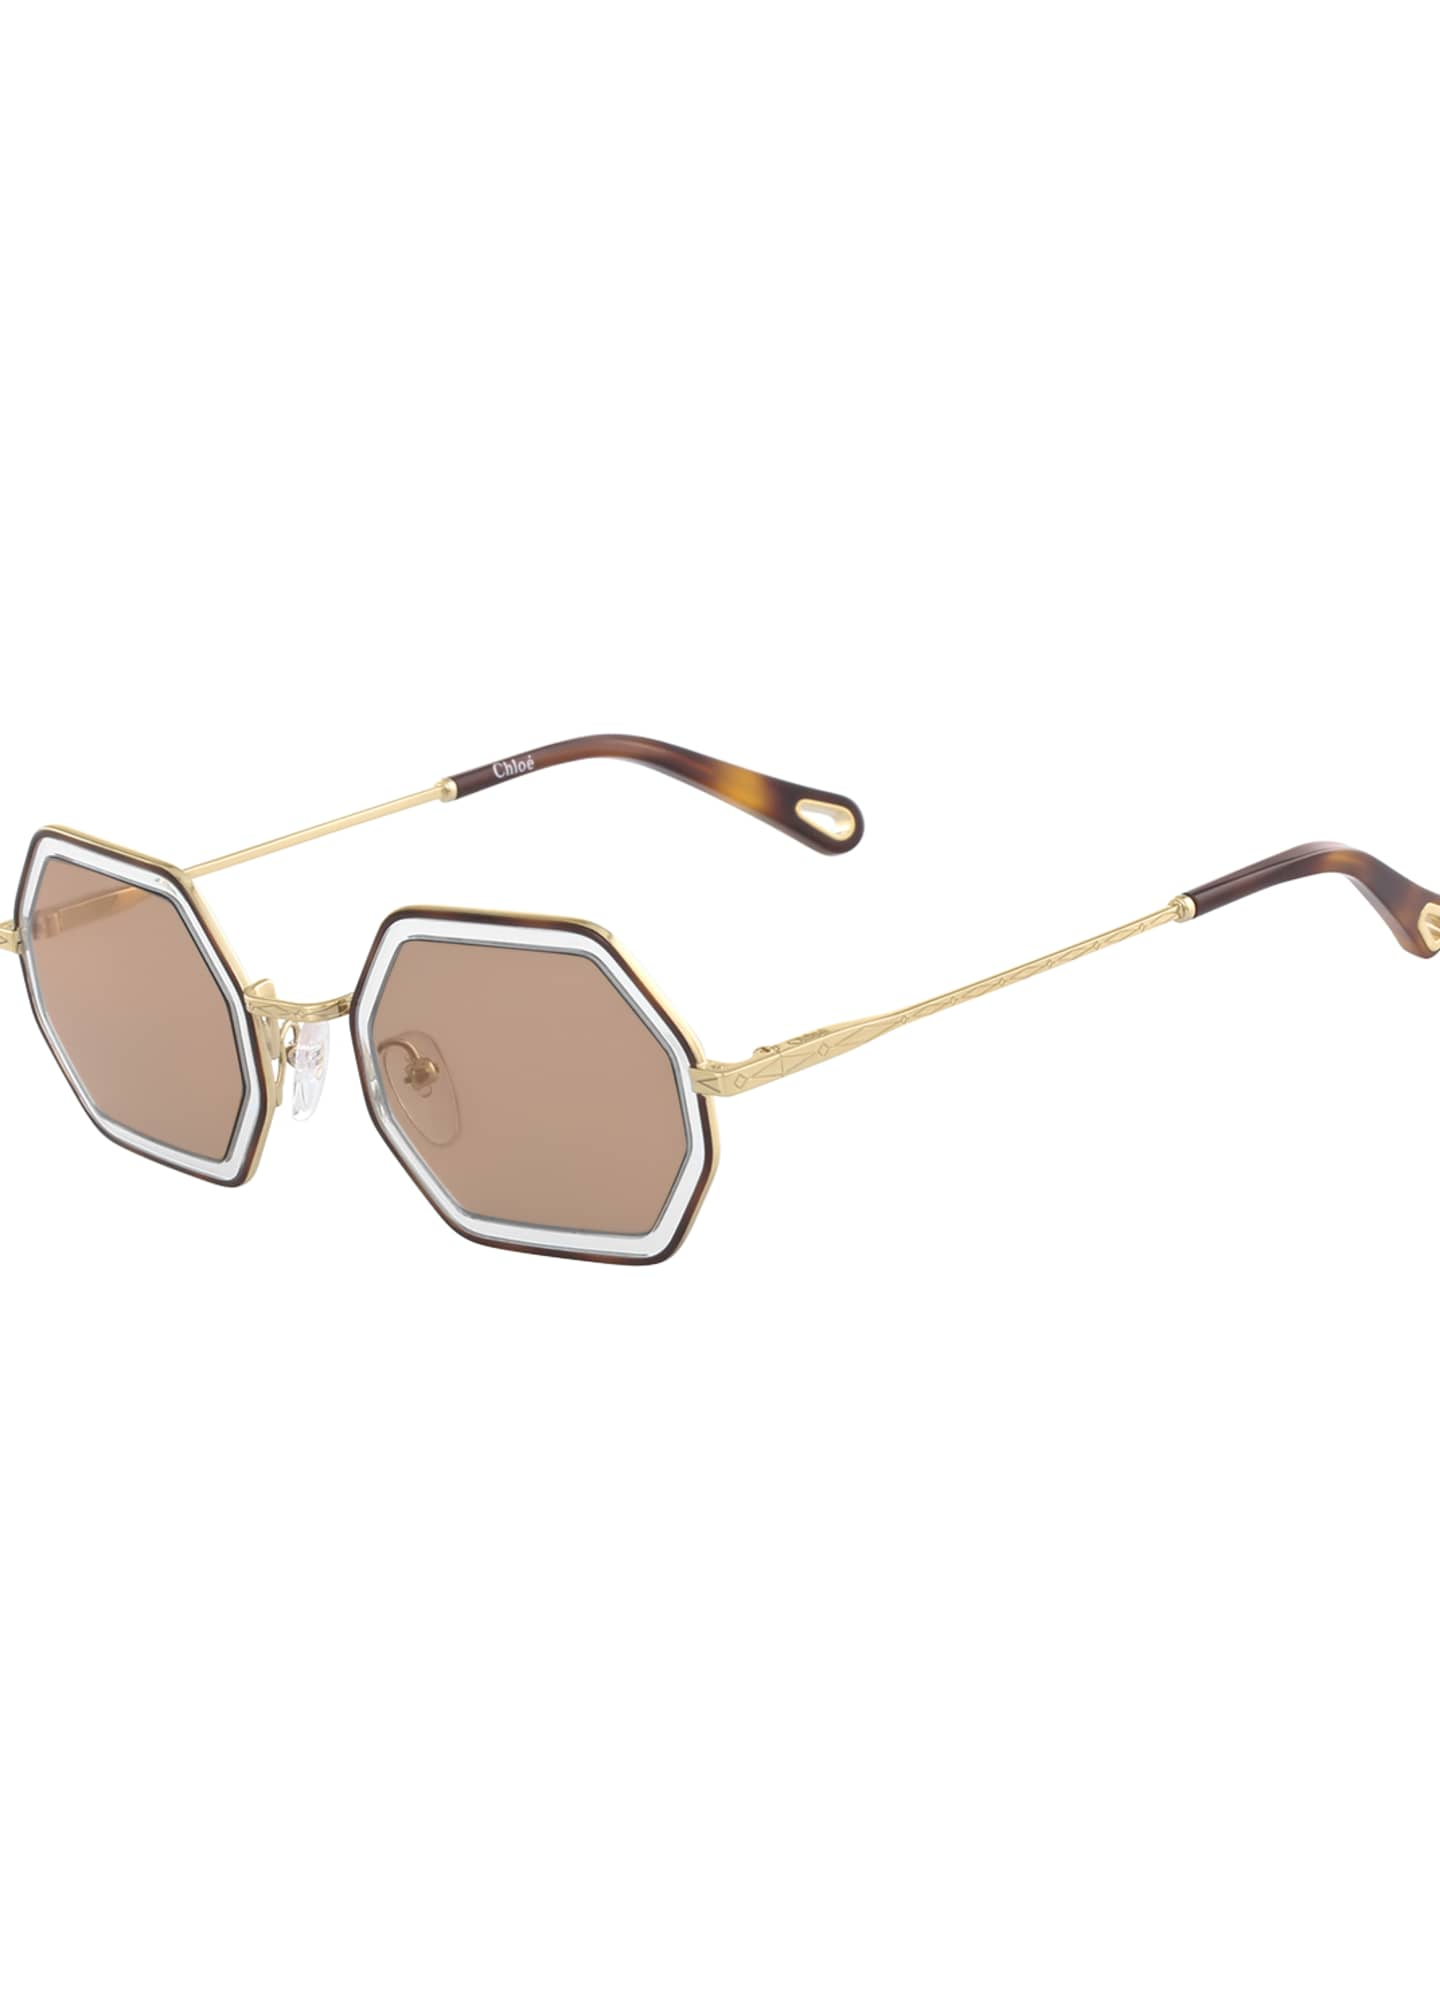 Chloe Tally Hexagonal Metal Sunglasses